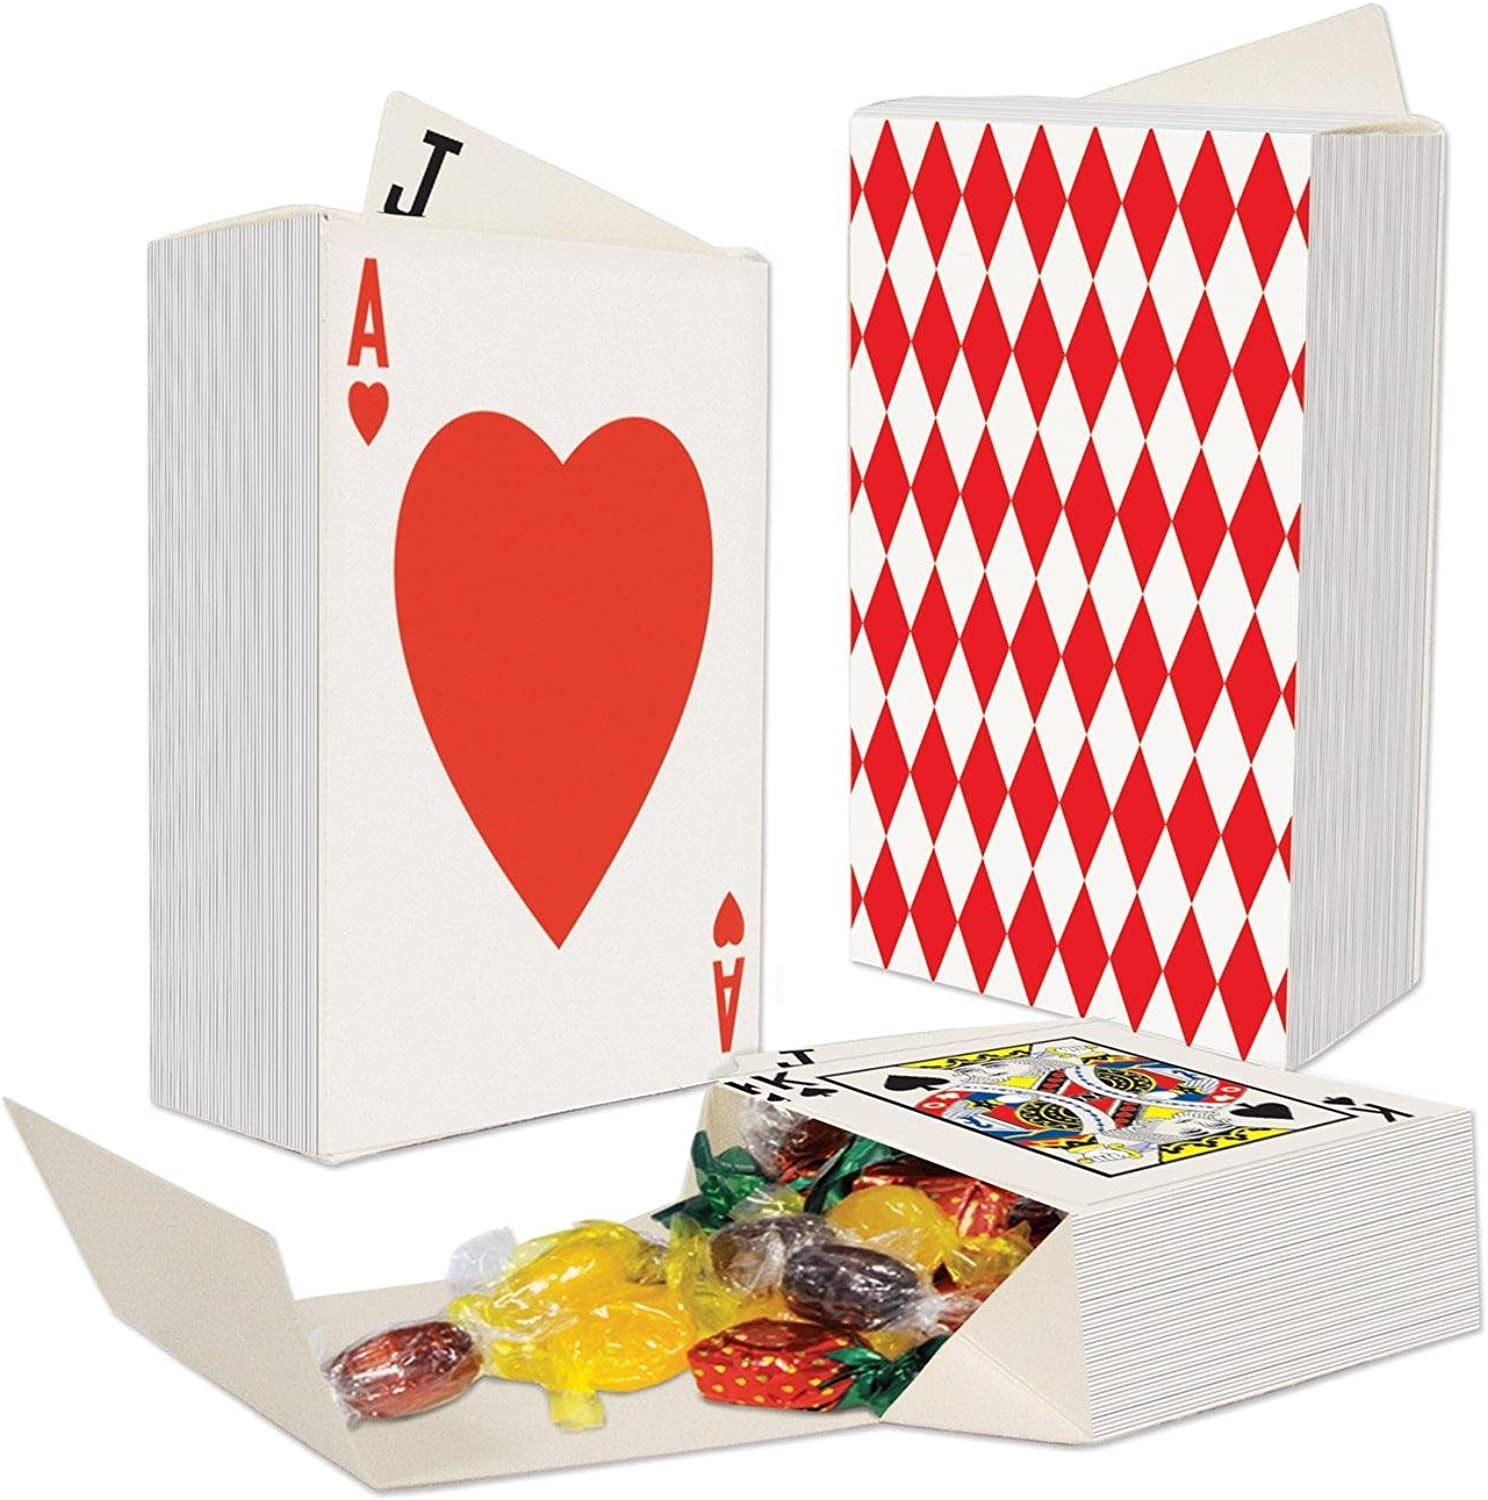 Party Central Club Pack of 36 ThreeDimensional Deck Of Playing Cards Favor Boxes 4